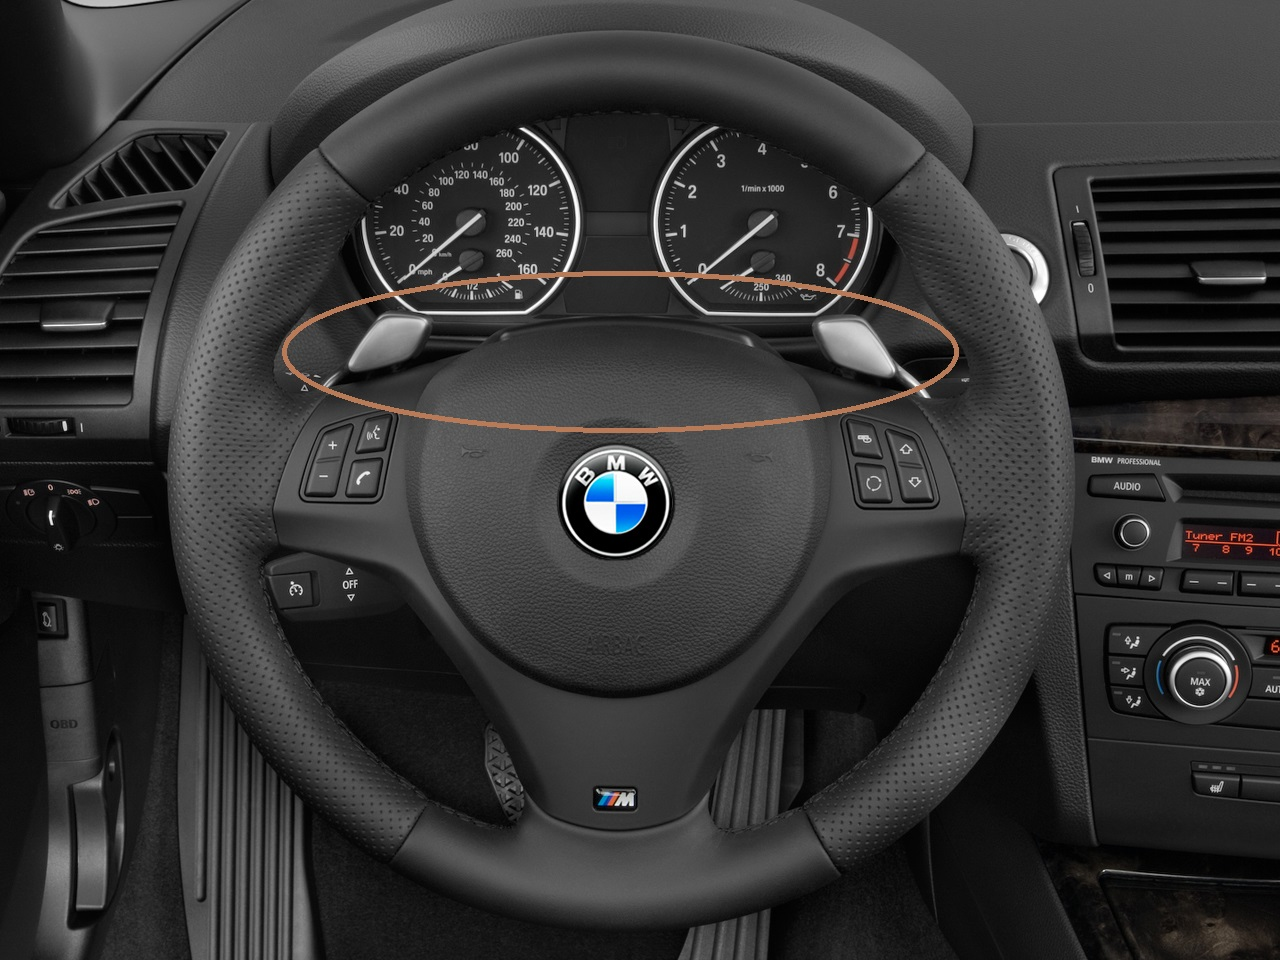 3 Series Fifth generation (E90/E91/E92/E93; 2010–2013)   PADDLE SHIFT WHEEL    1 Series First Generation (E81/E82/E87/E88; 2010–2013) PADDLE SHIFT WHEEL